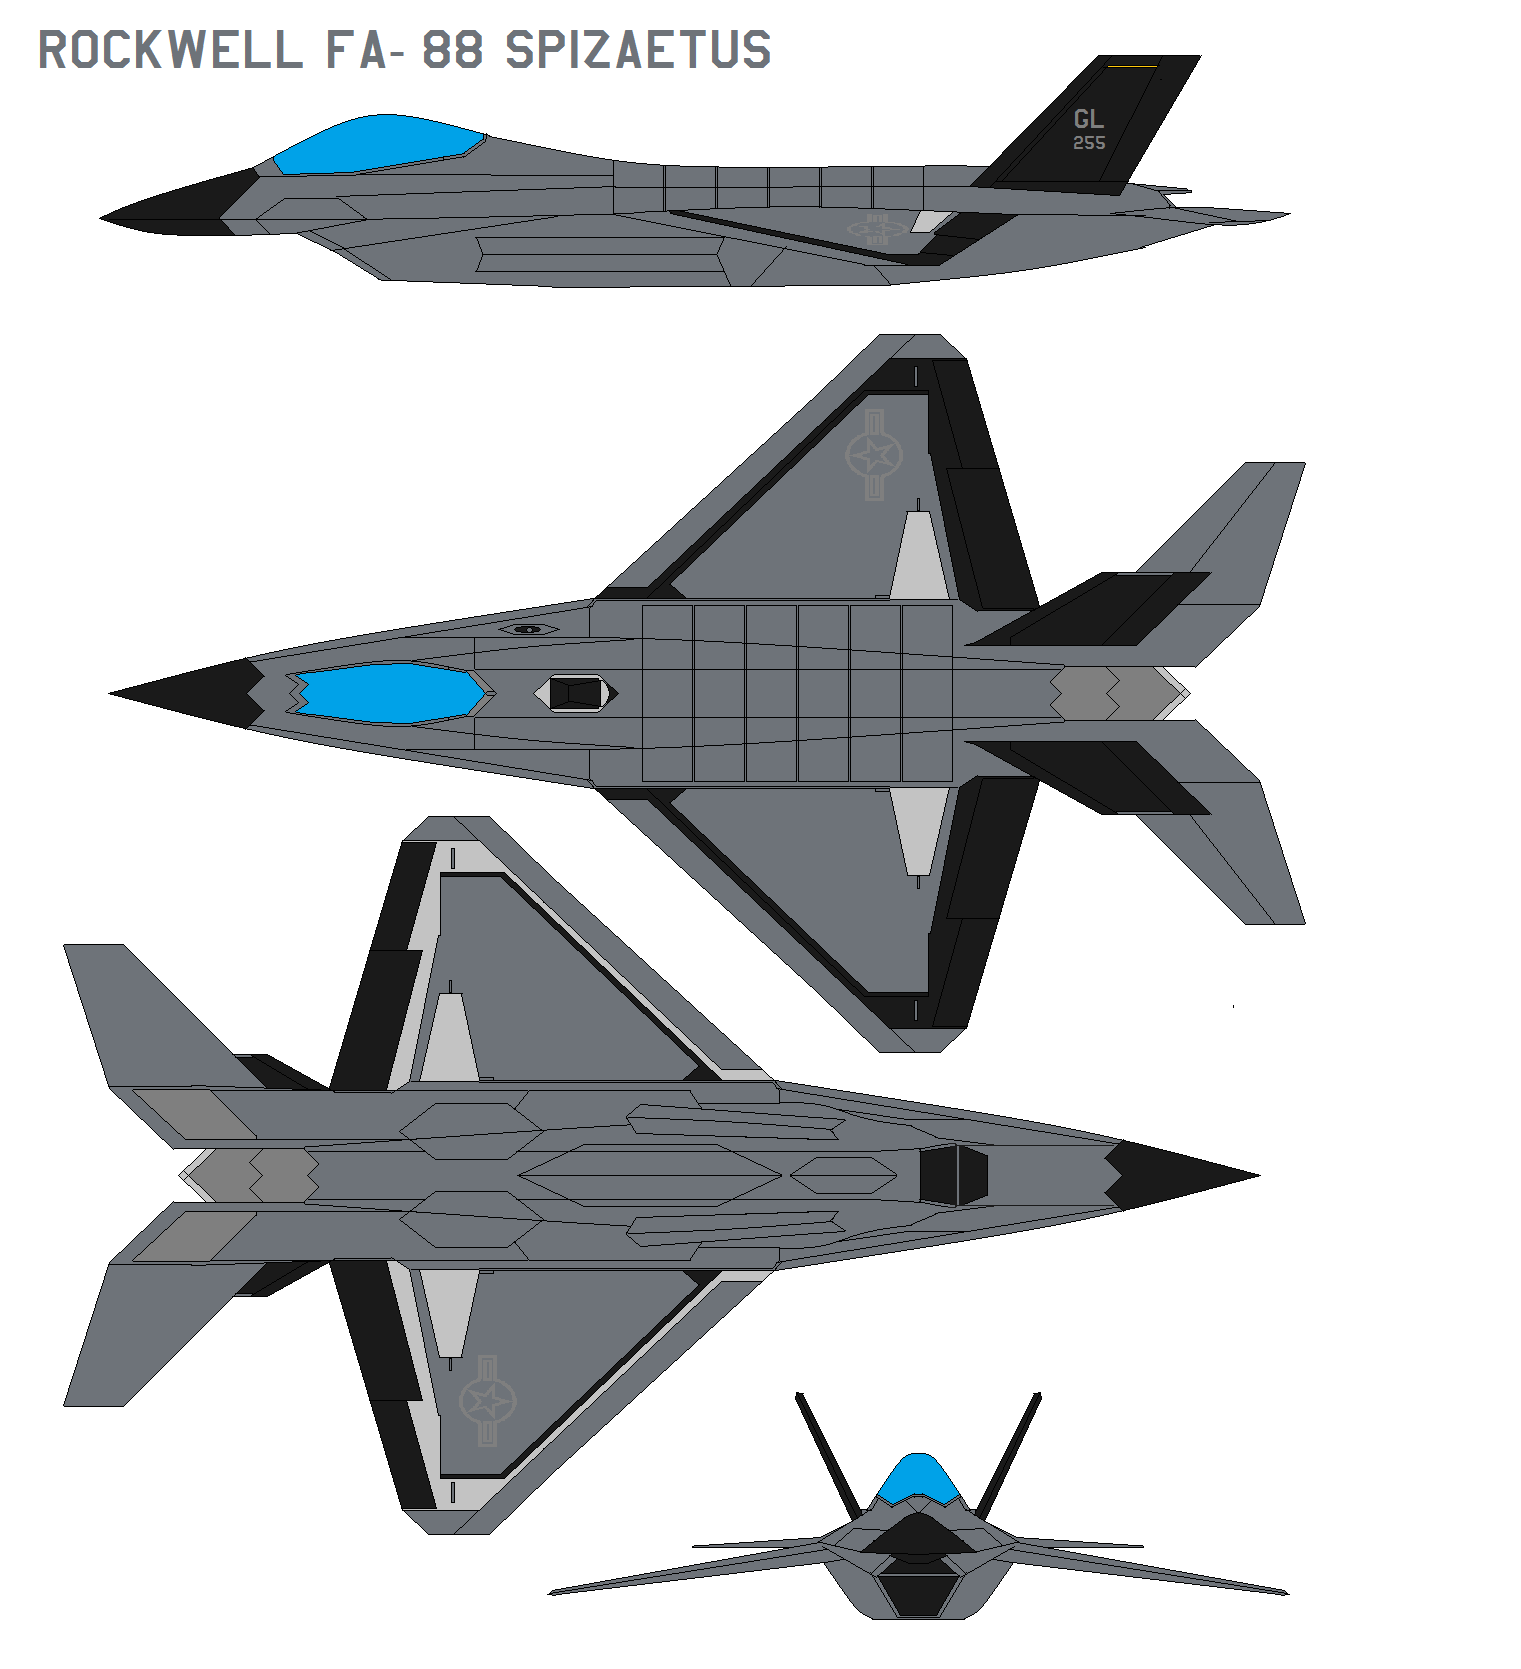 Rockwell FA-88 Spizaetus by bagera3005